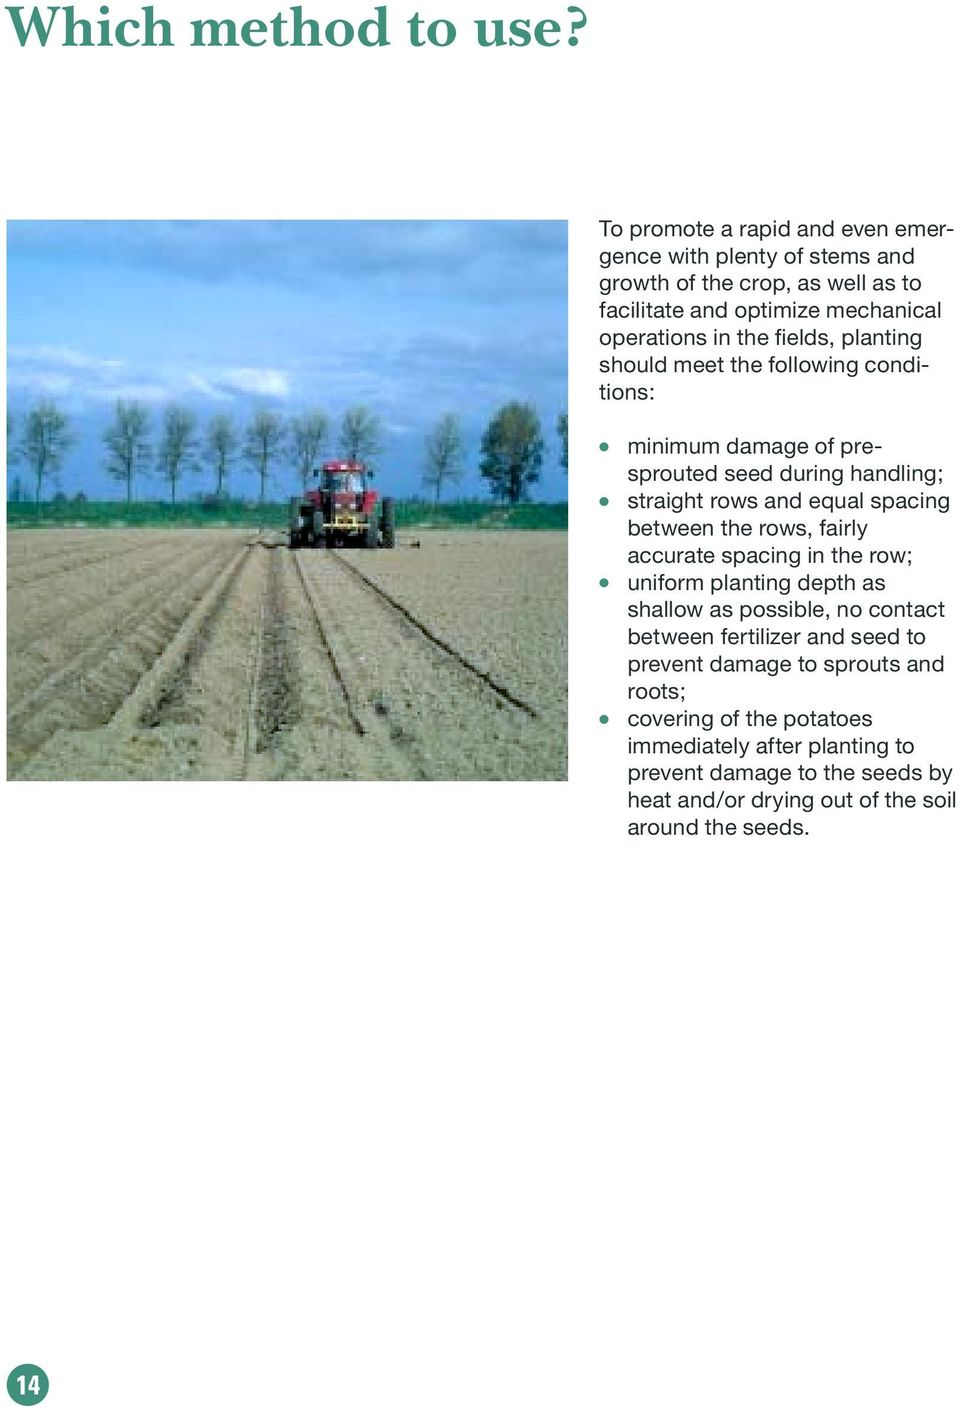 planting should meet the following conditions: minimum damage of presprouted seed during handling; straight rows and equal spacing between the rows, fairly